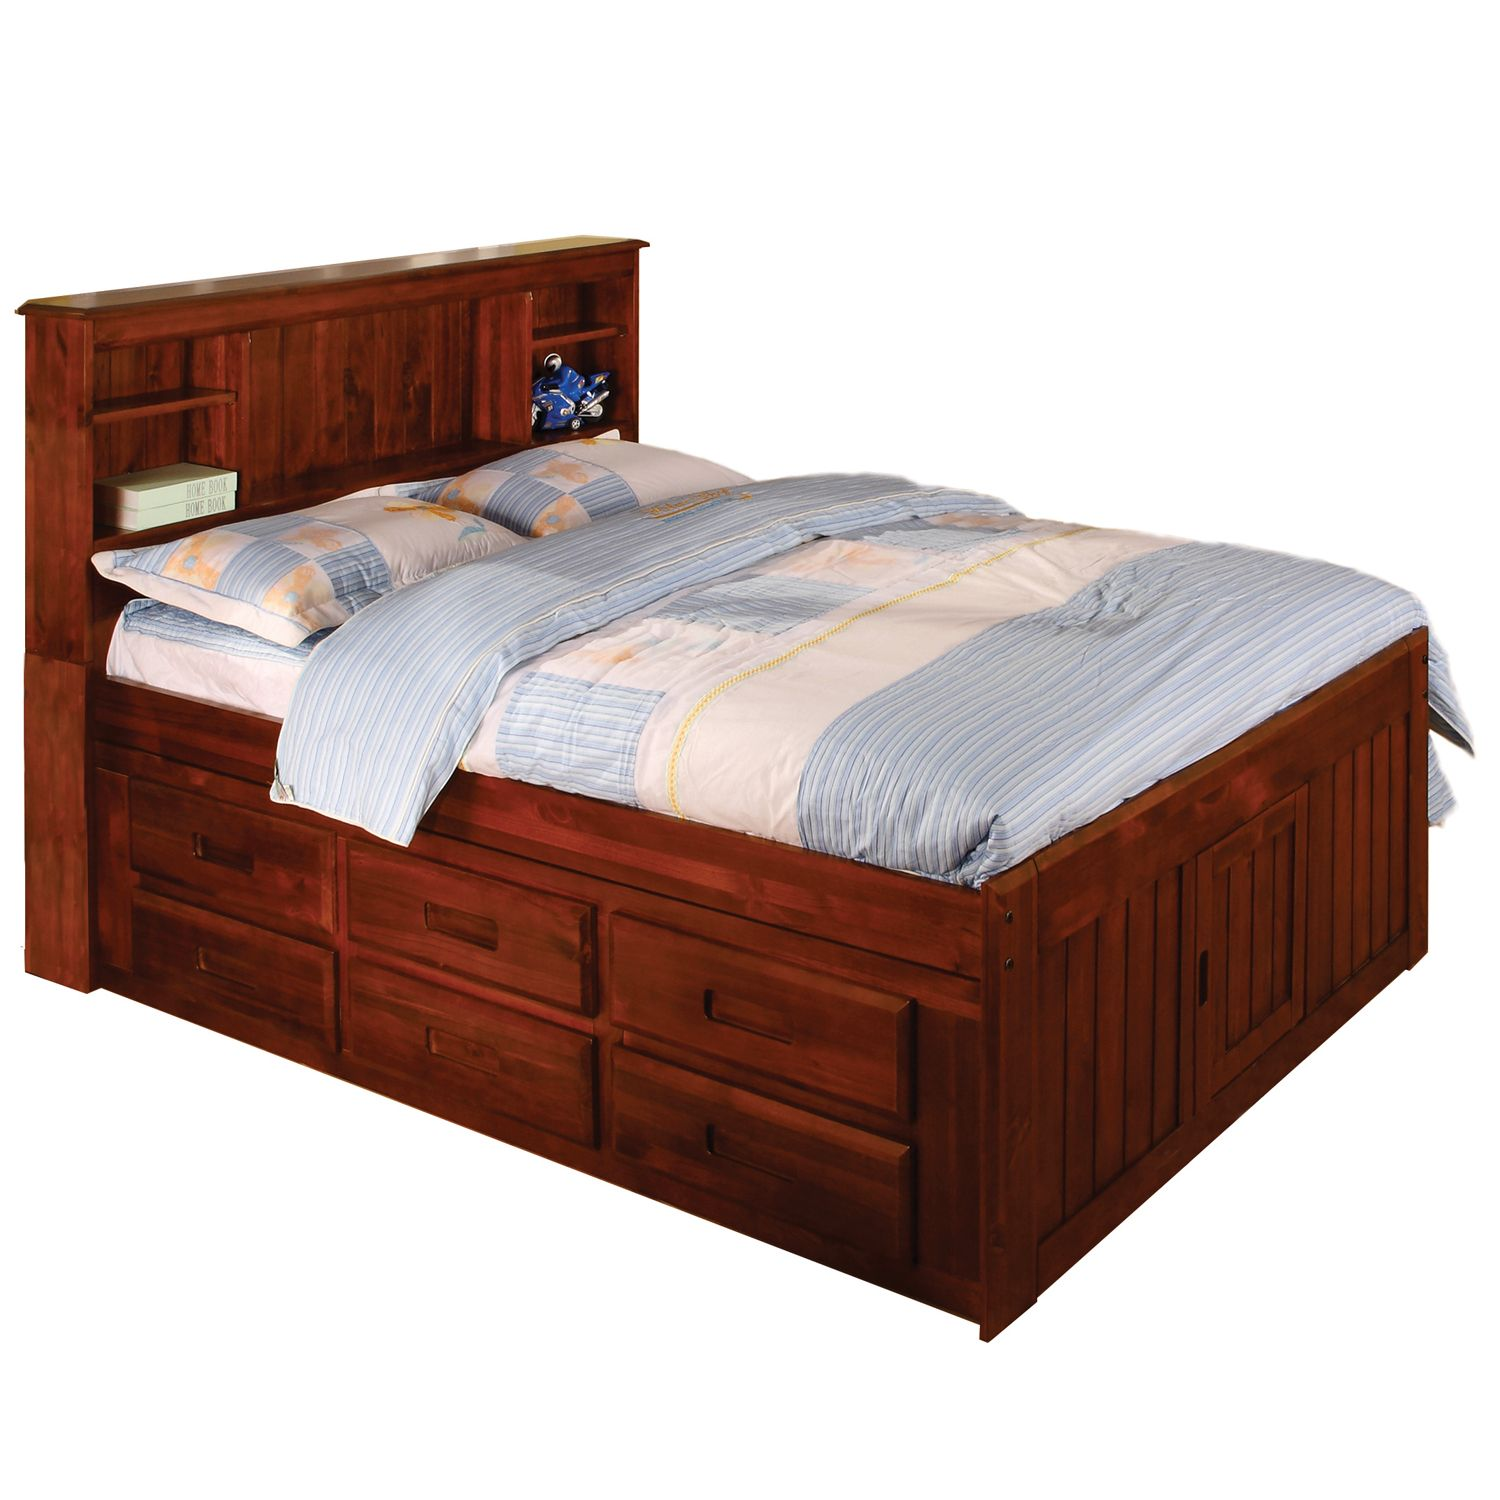 Bed In A Drawer Merlot Bookcase 6Drawer Fullsize Bed  Great Deals Kid And Sleep